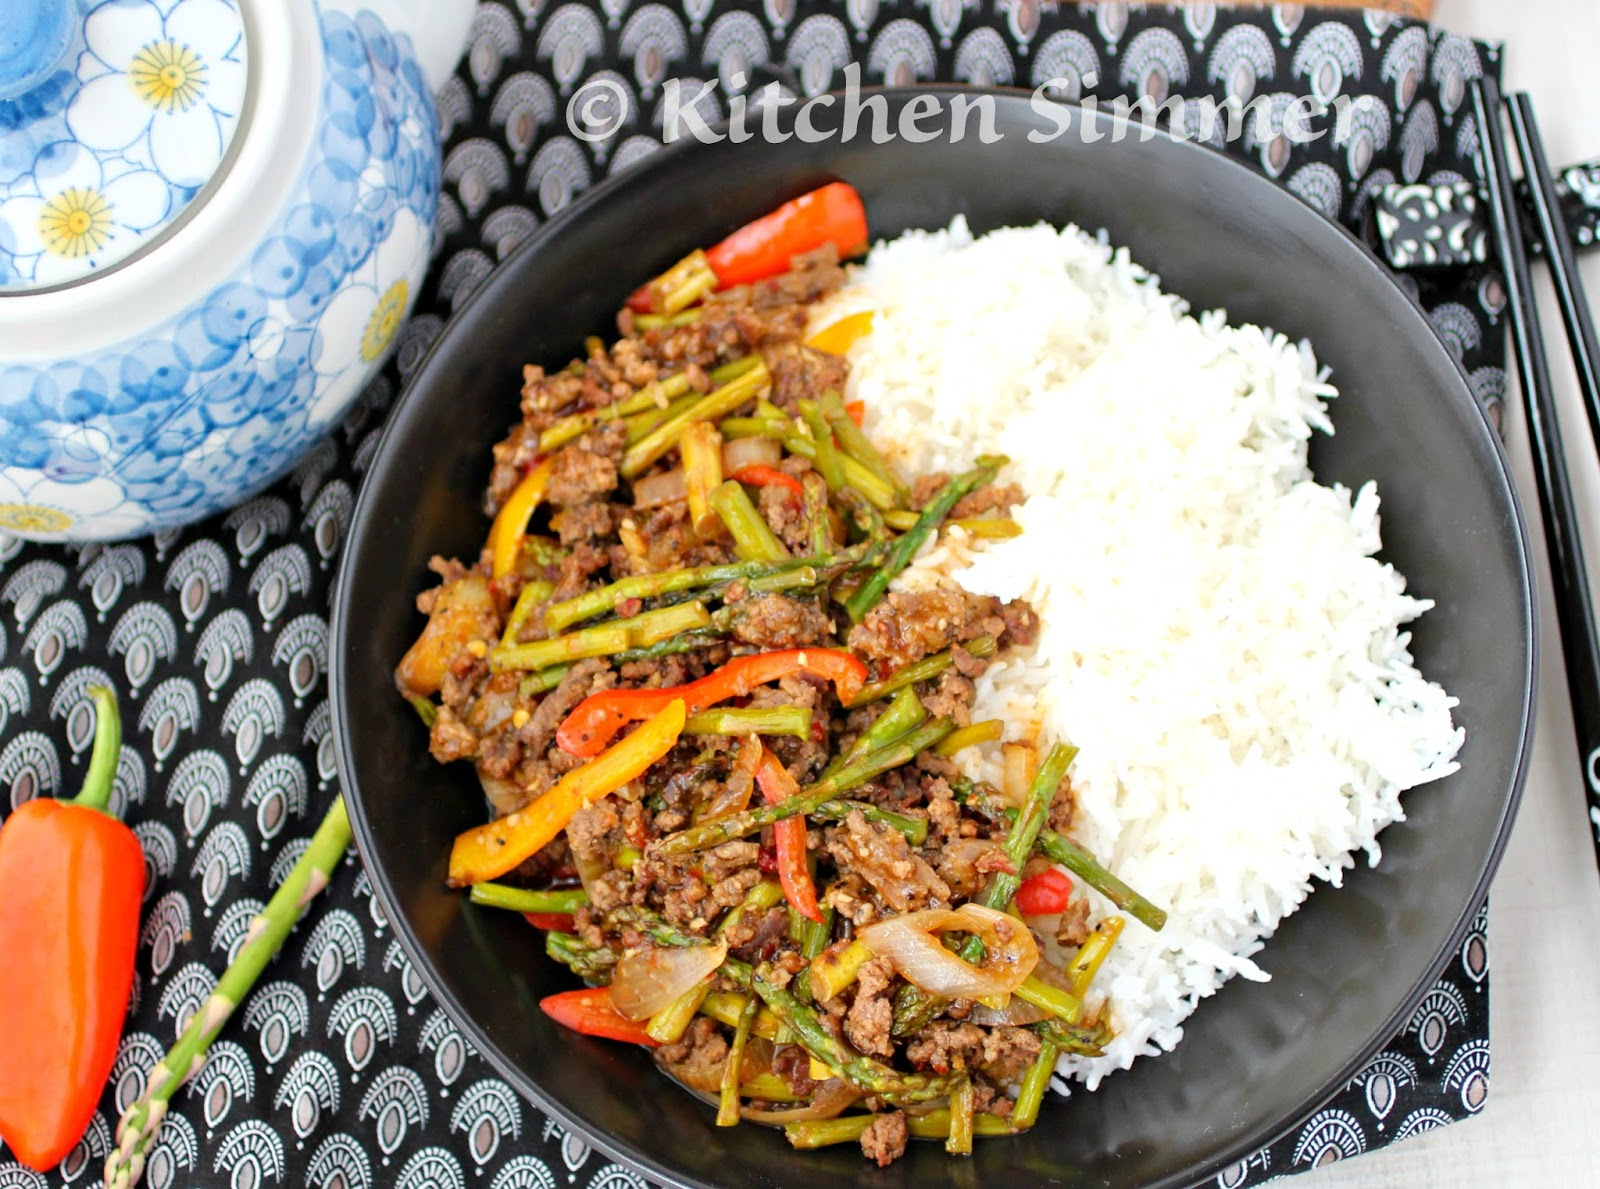 Mince Beef And Asparagus Stir Fry Is A Wonderful Way To Use Up Some Of The Asparagus That Is In Bounty At This Time Of The Year